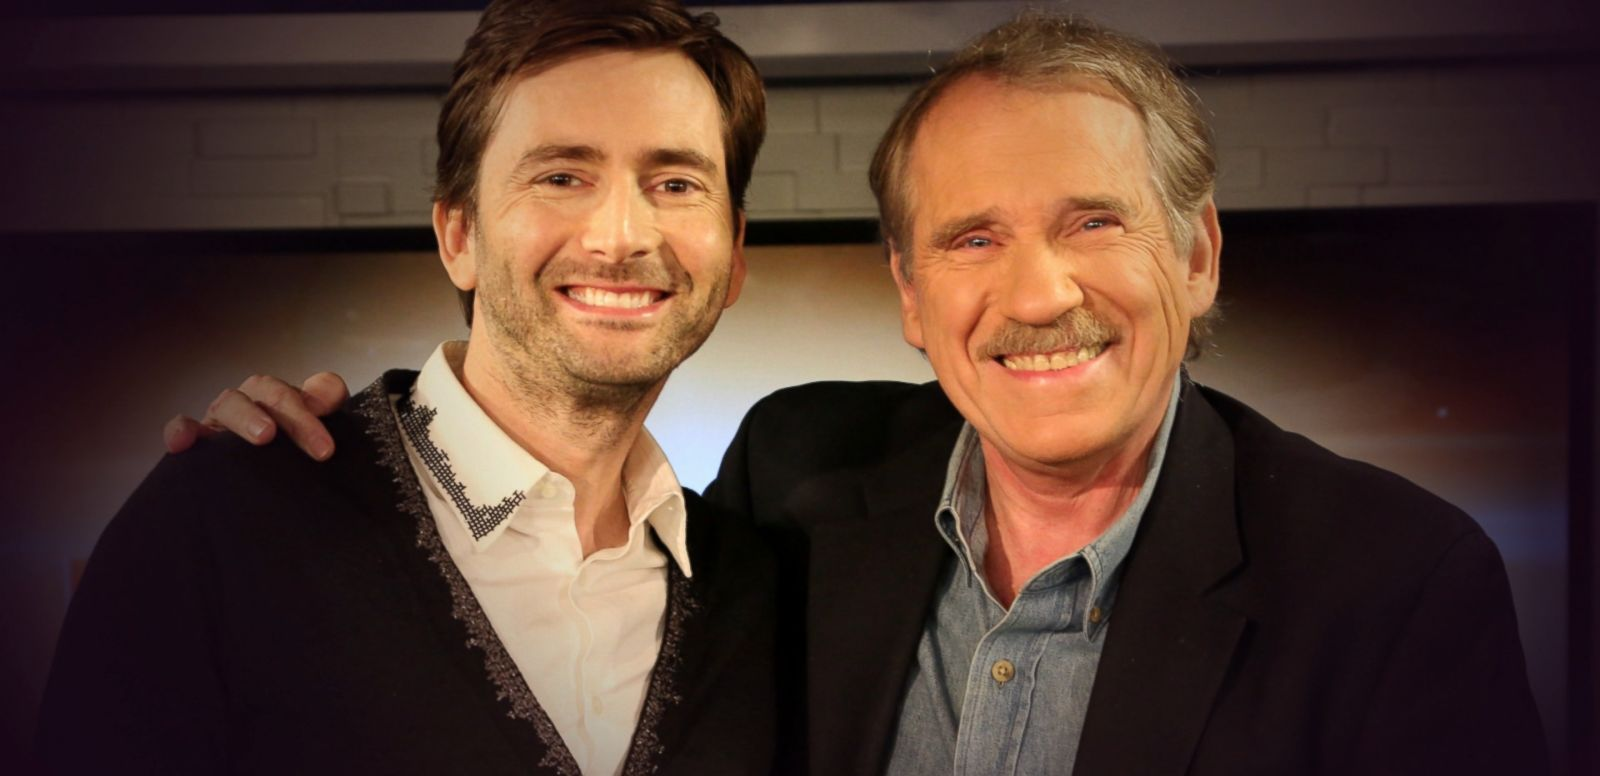 VIDEO: David Tennant on his new role as Dr. Kilgrave